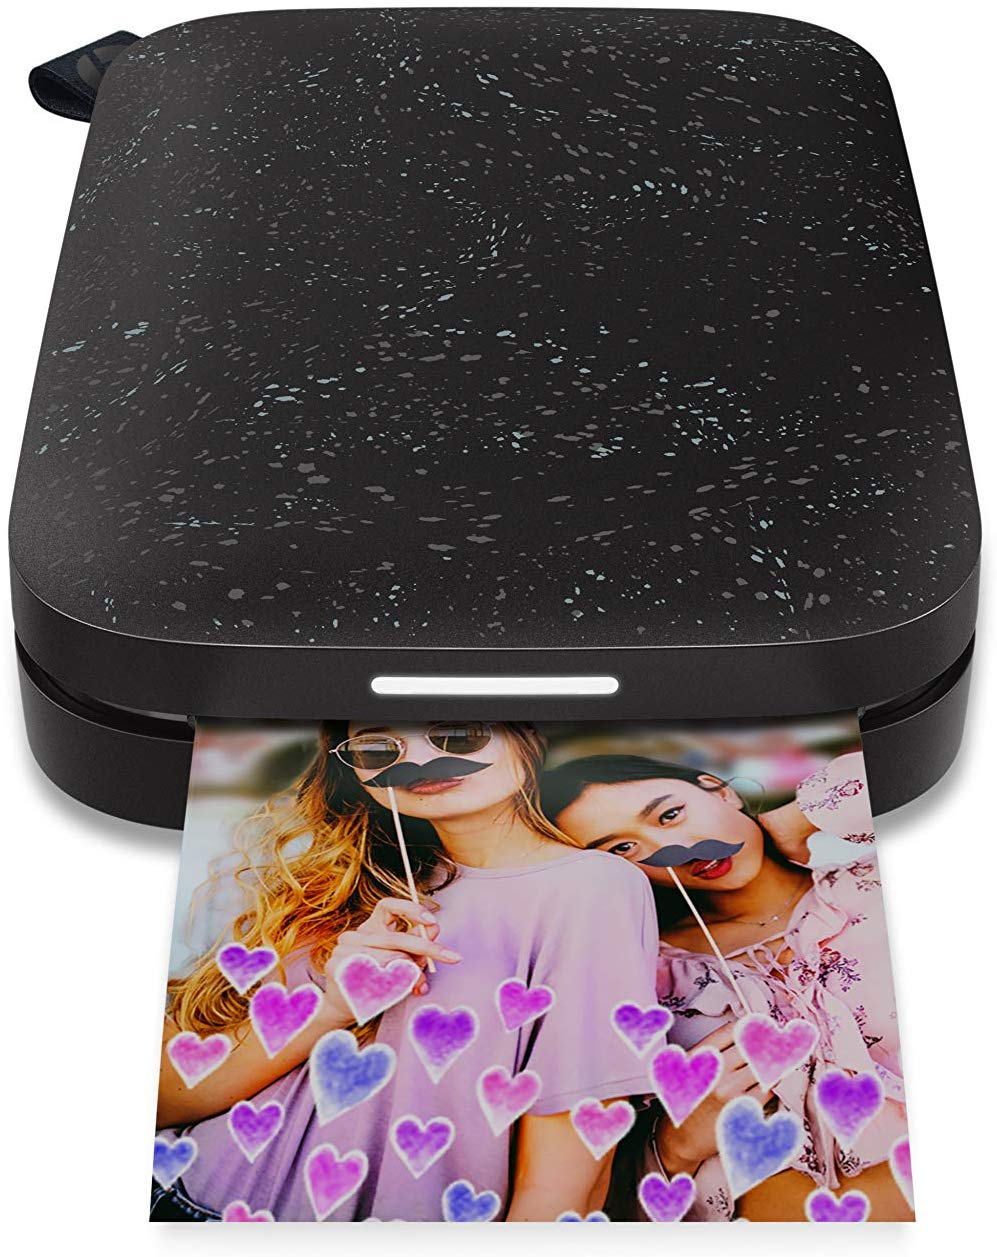 HP Sprocket 200 – Black